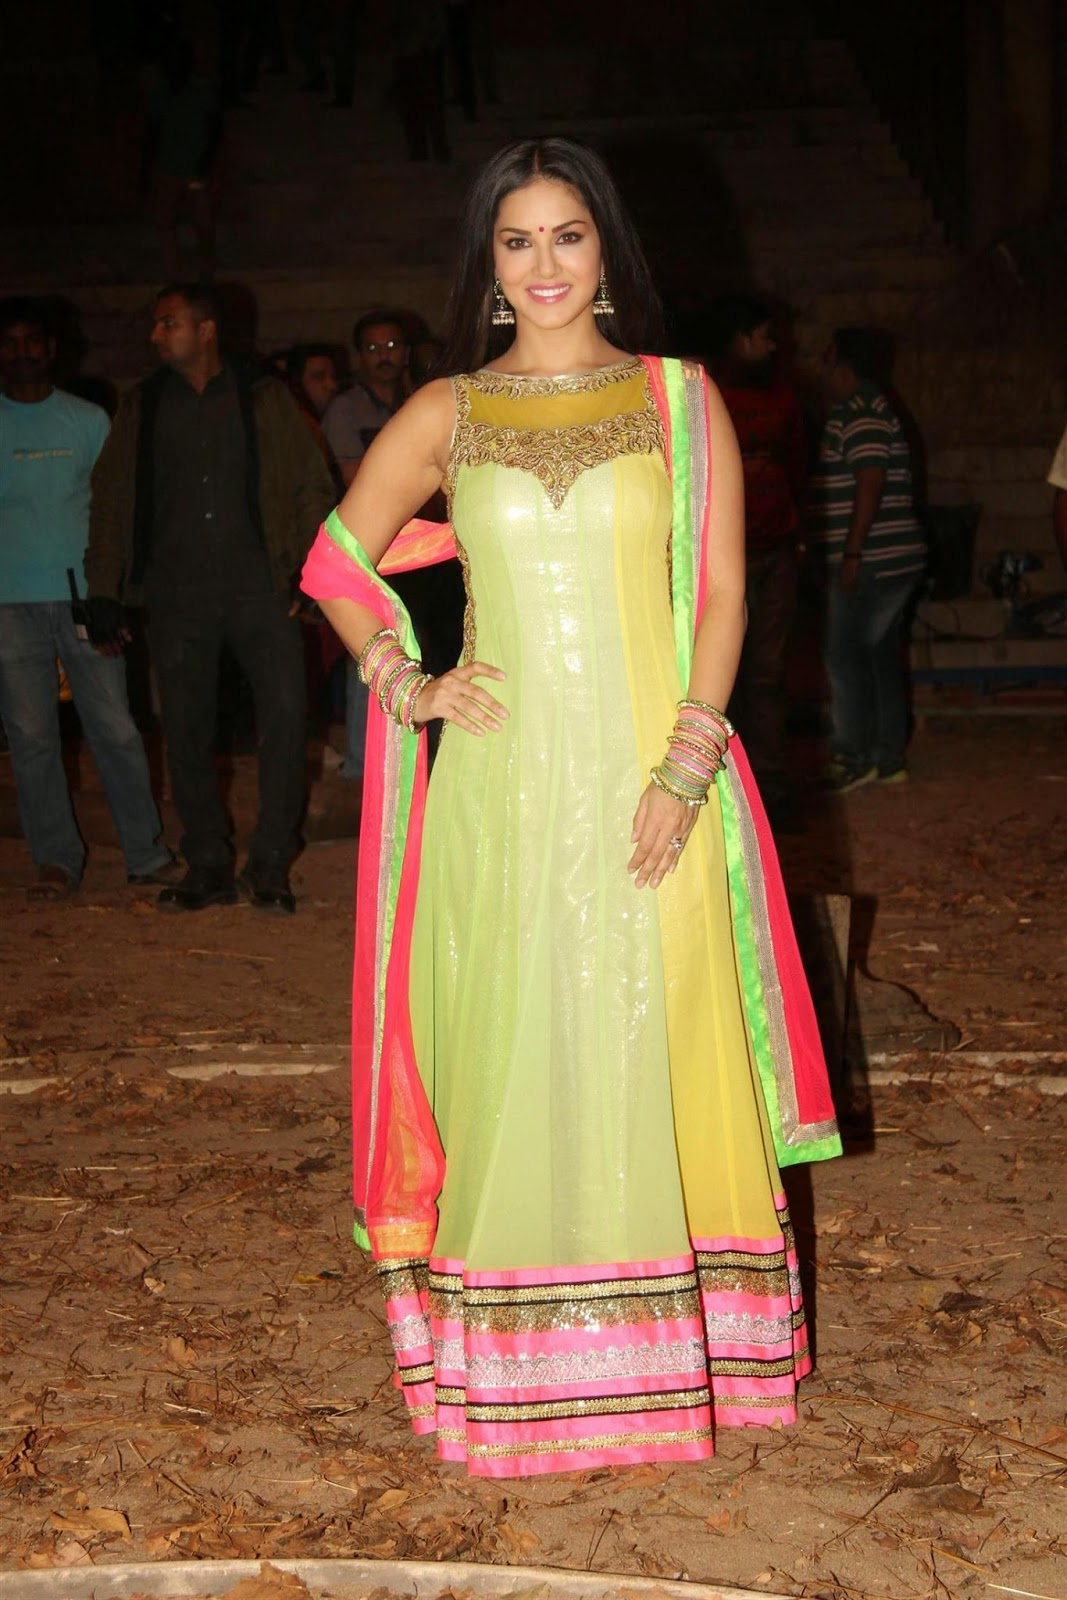 Sunny Leone Latest Photos At Ek Paheli Leela Movie Sets -5647